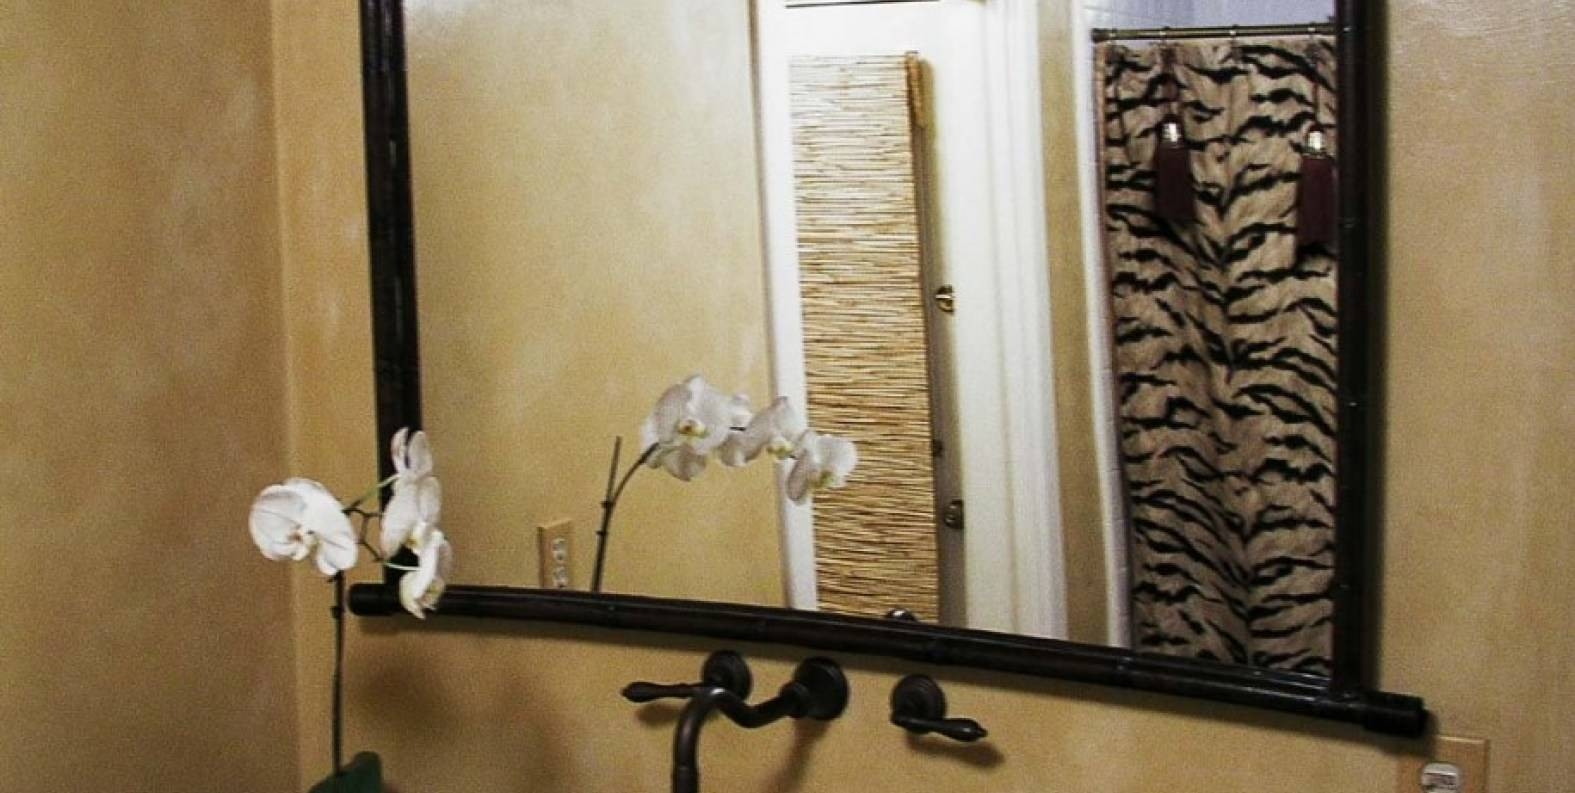 Mirror : Valuable Black Faux Leather Framed Mirror Breathtaking Within Black Leather Framed Mirrors (View 5 of 15)